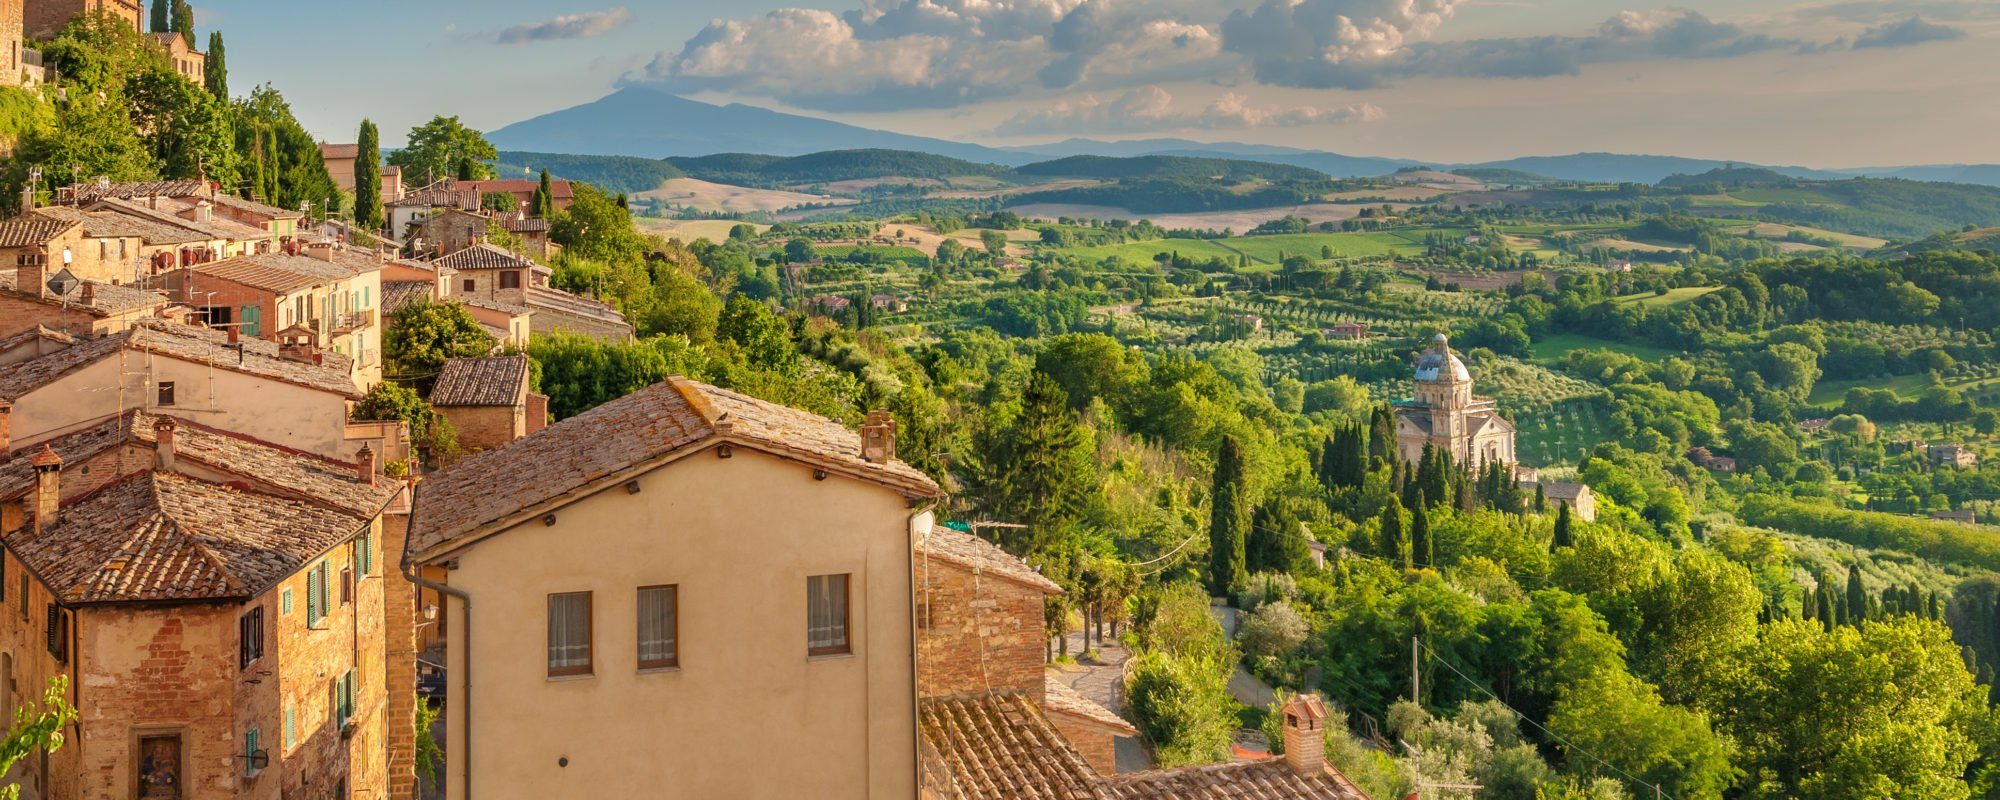 Visit the Tuscan Countryside